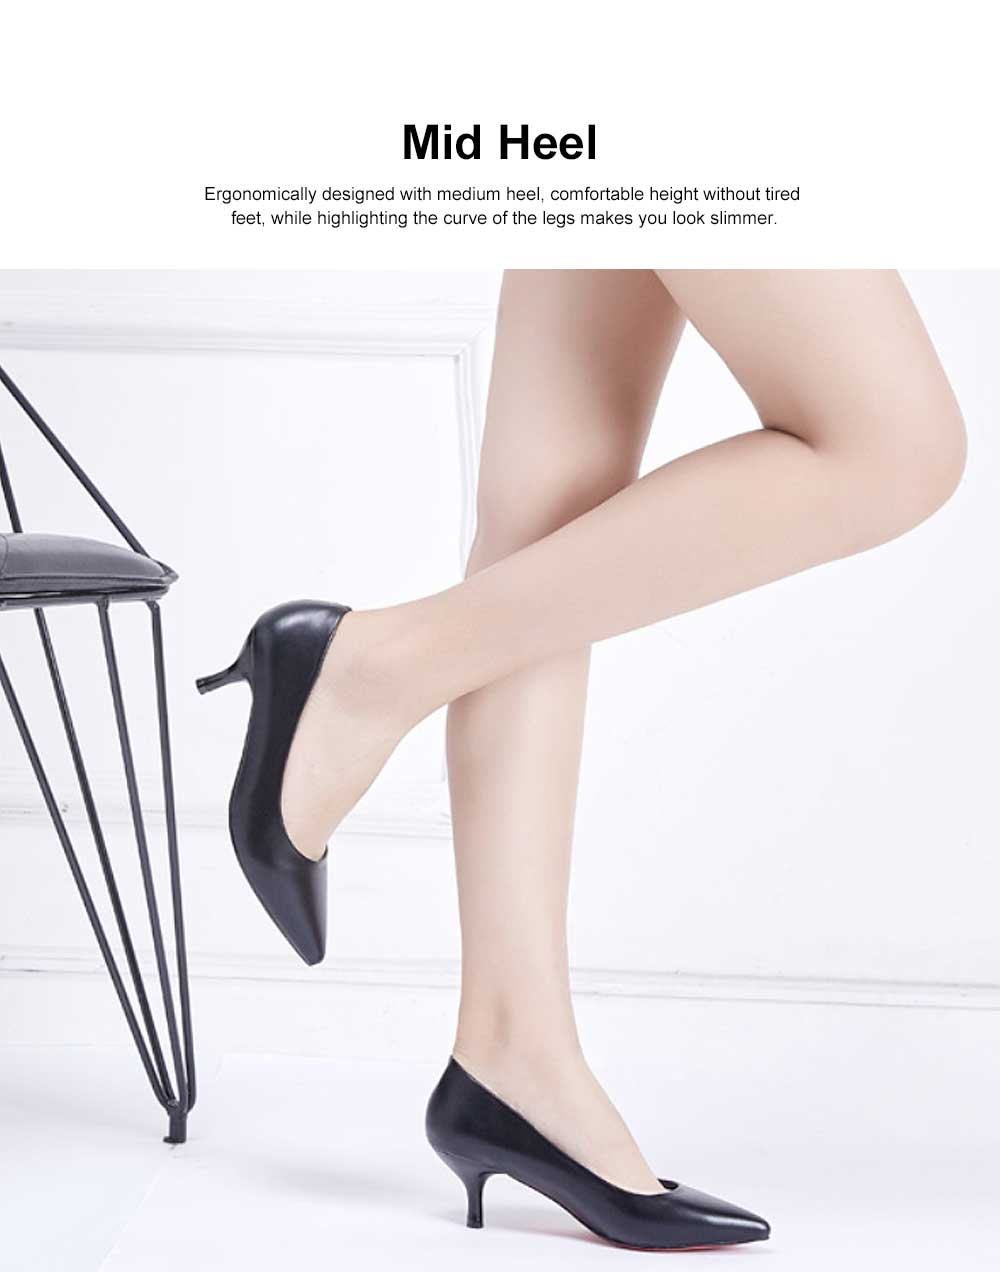 Women's Low-heel Shoes, Comfortable Pointed Toe Casual Synthetic Leather Pumps Shoe, Fashion Slim Heel Office Shoes 2